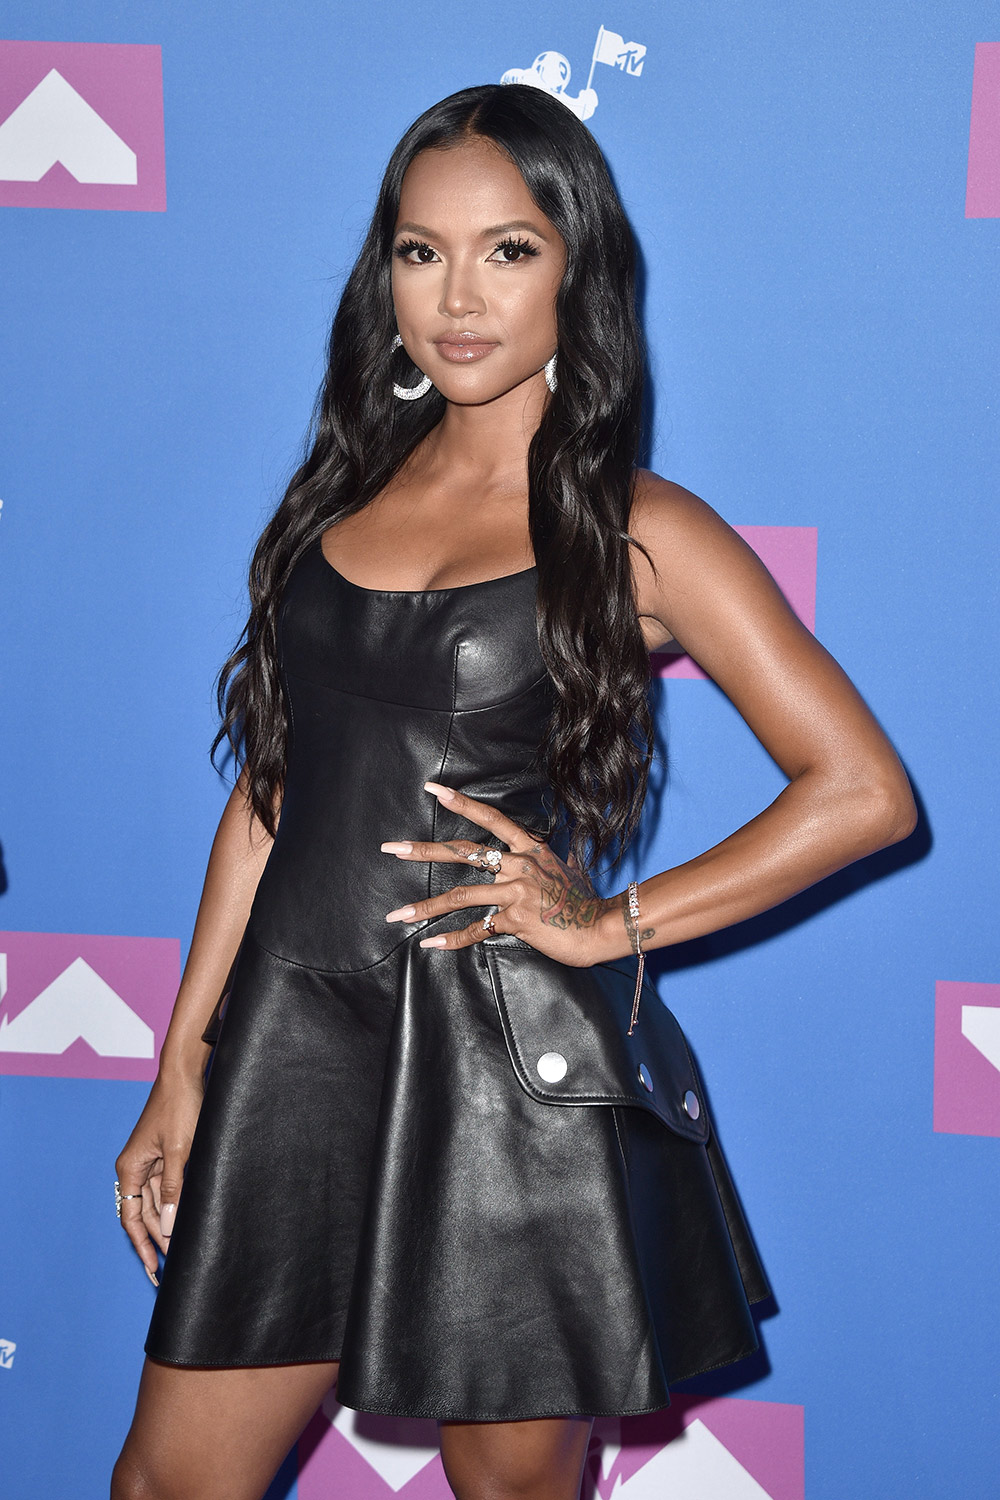 Karrueche Tran attends 2018 MTV Video Music Awards